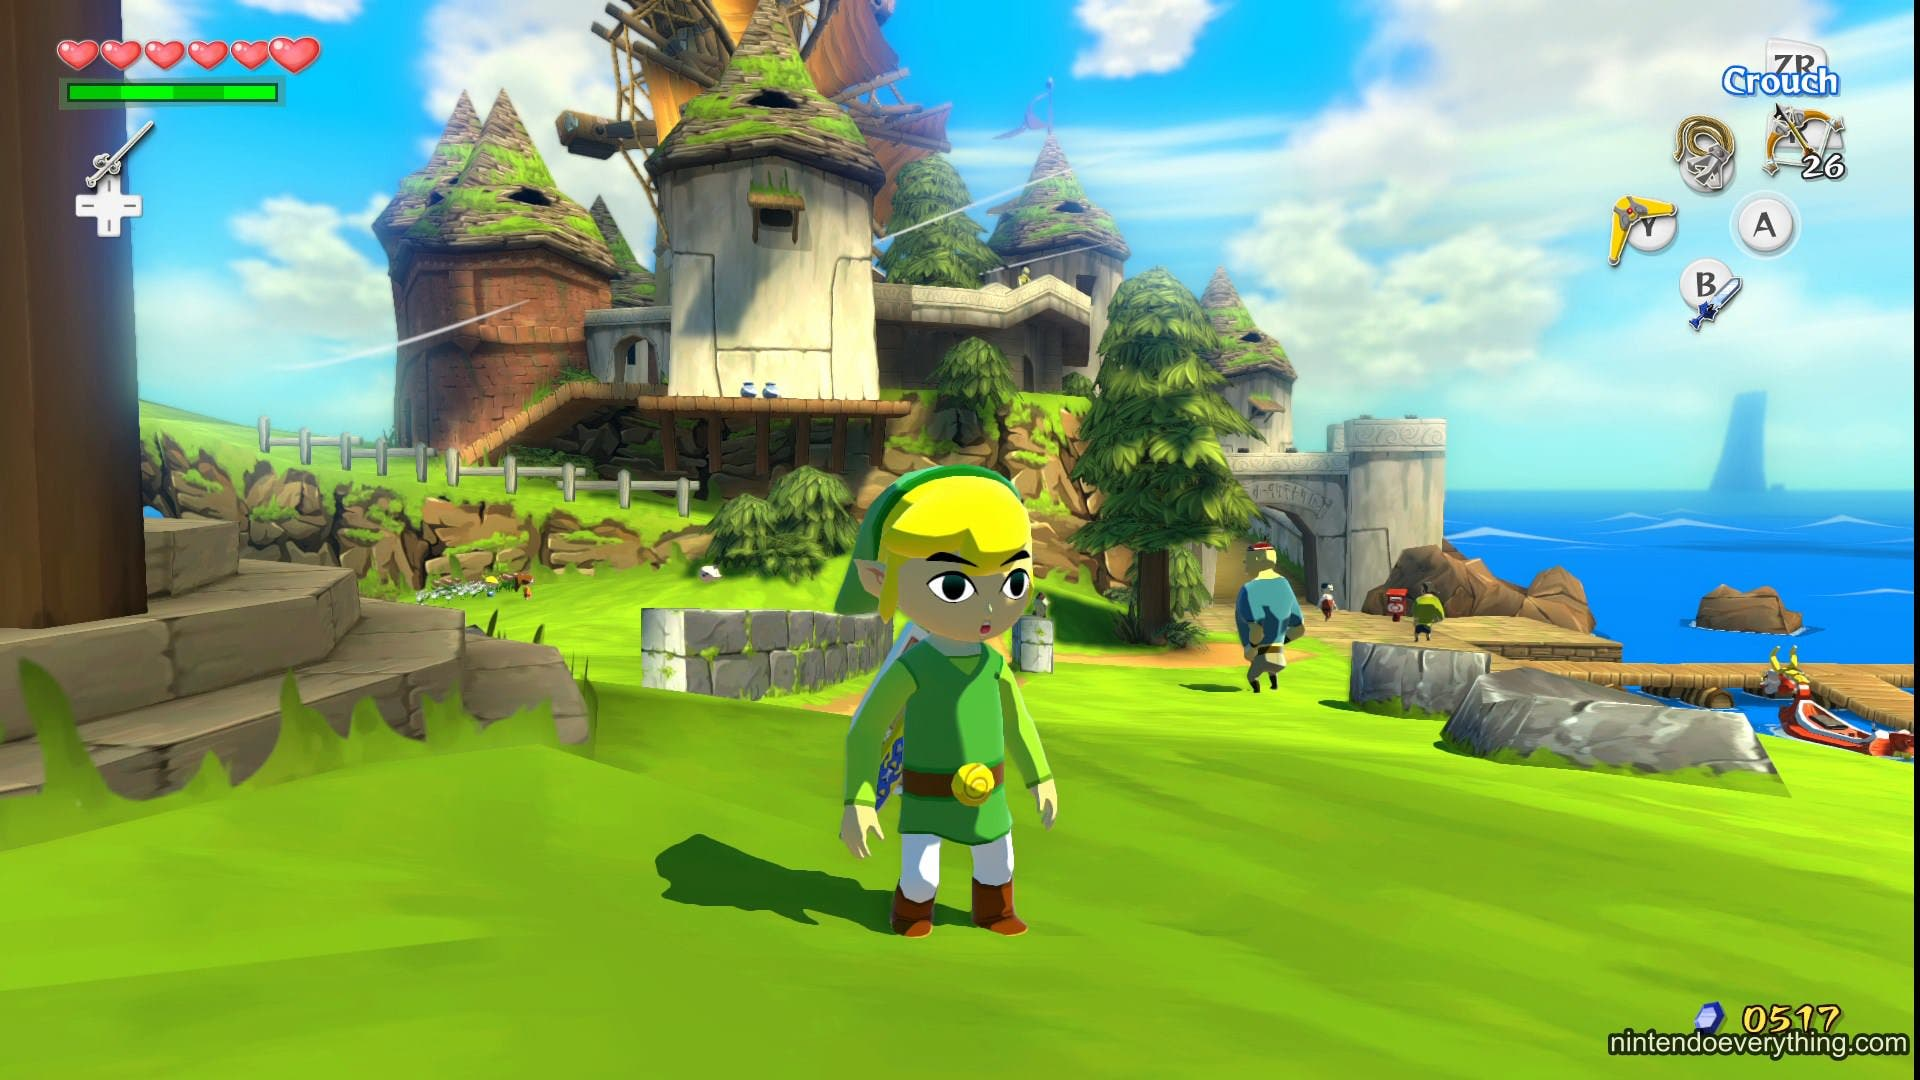 Aounuma necesitaba un remake de 'The Legend of Zelda: The Wind Waker HD'